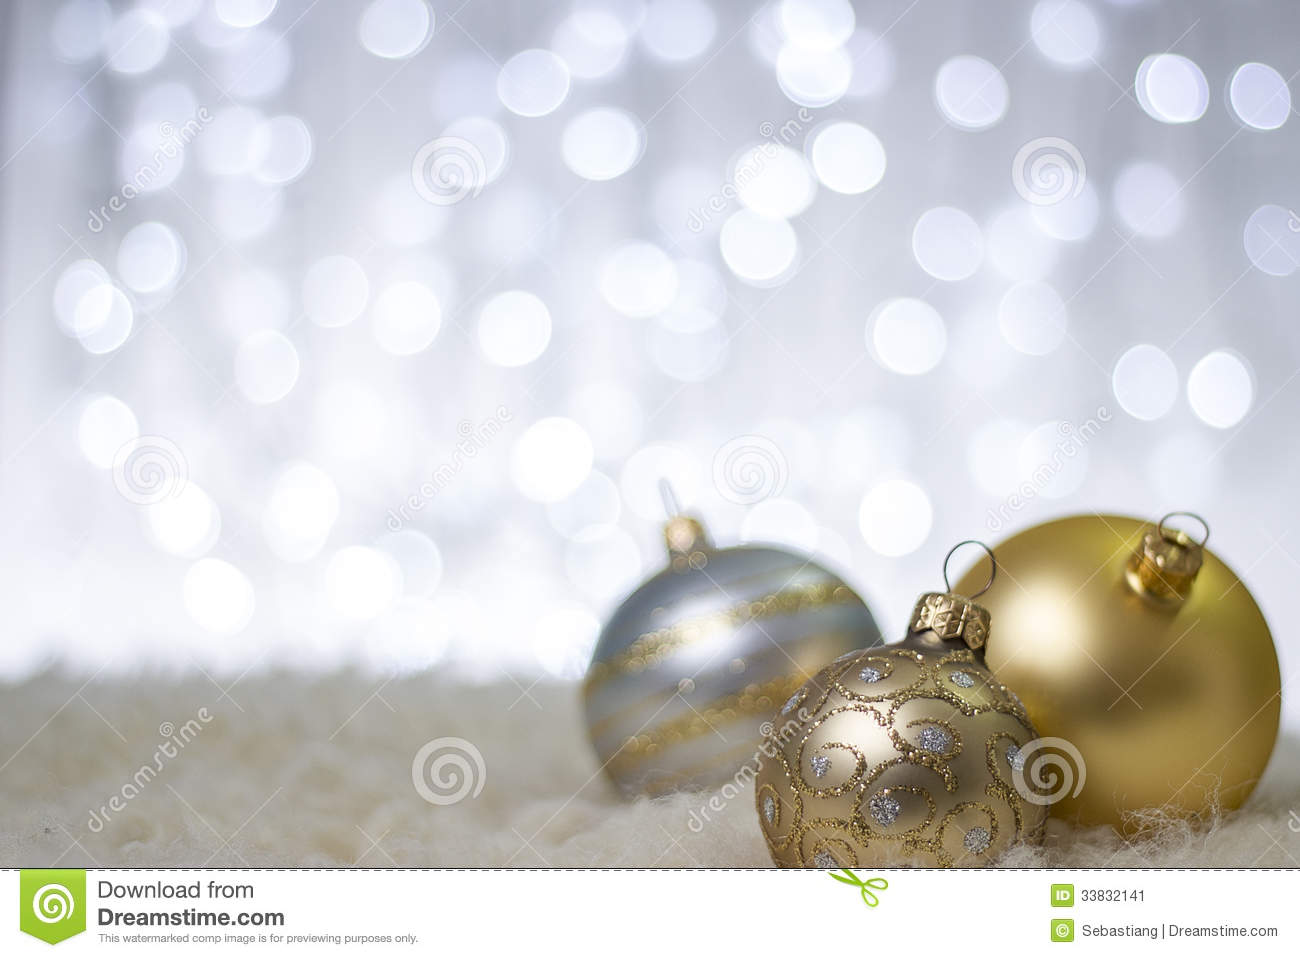 photography of gold and silver christmas balls in a winter scene beautiful christmas decorations close up image with gold silver christmas balls